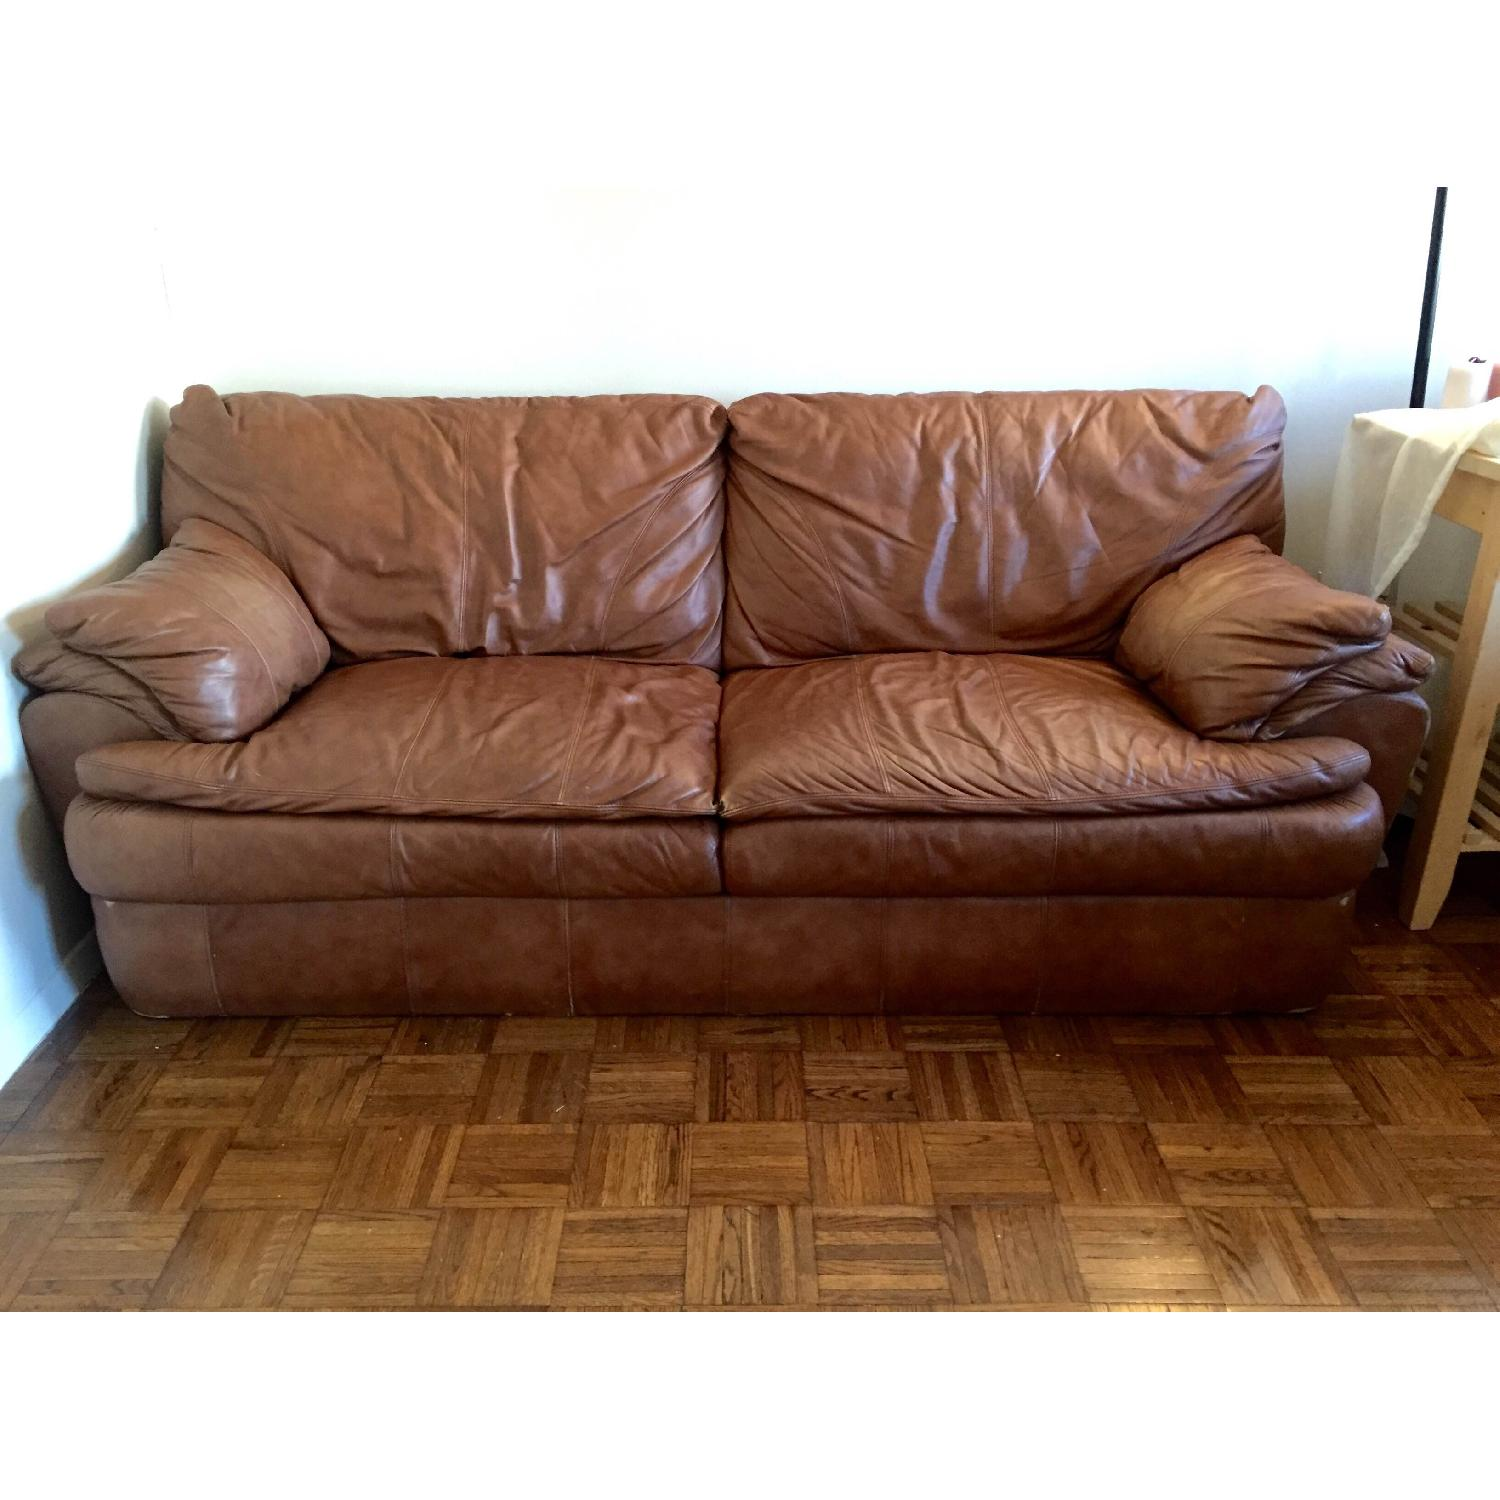 Rustic Style Leather Couch